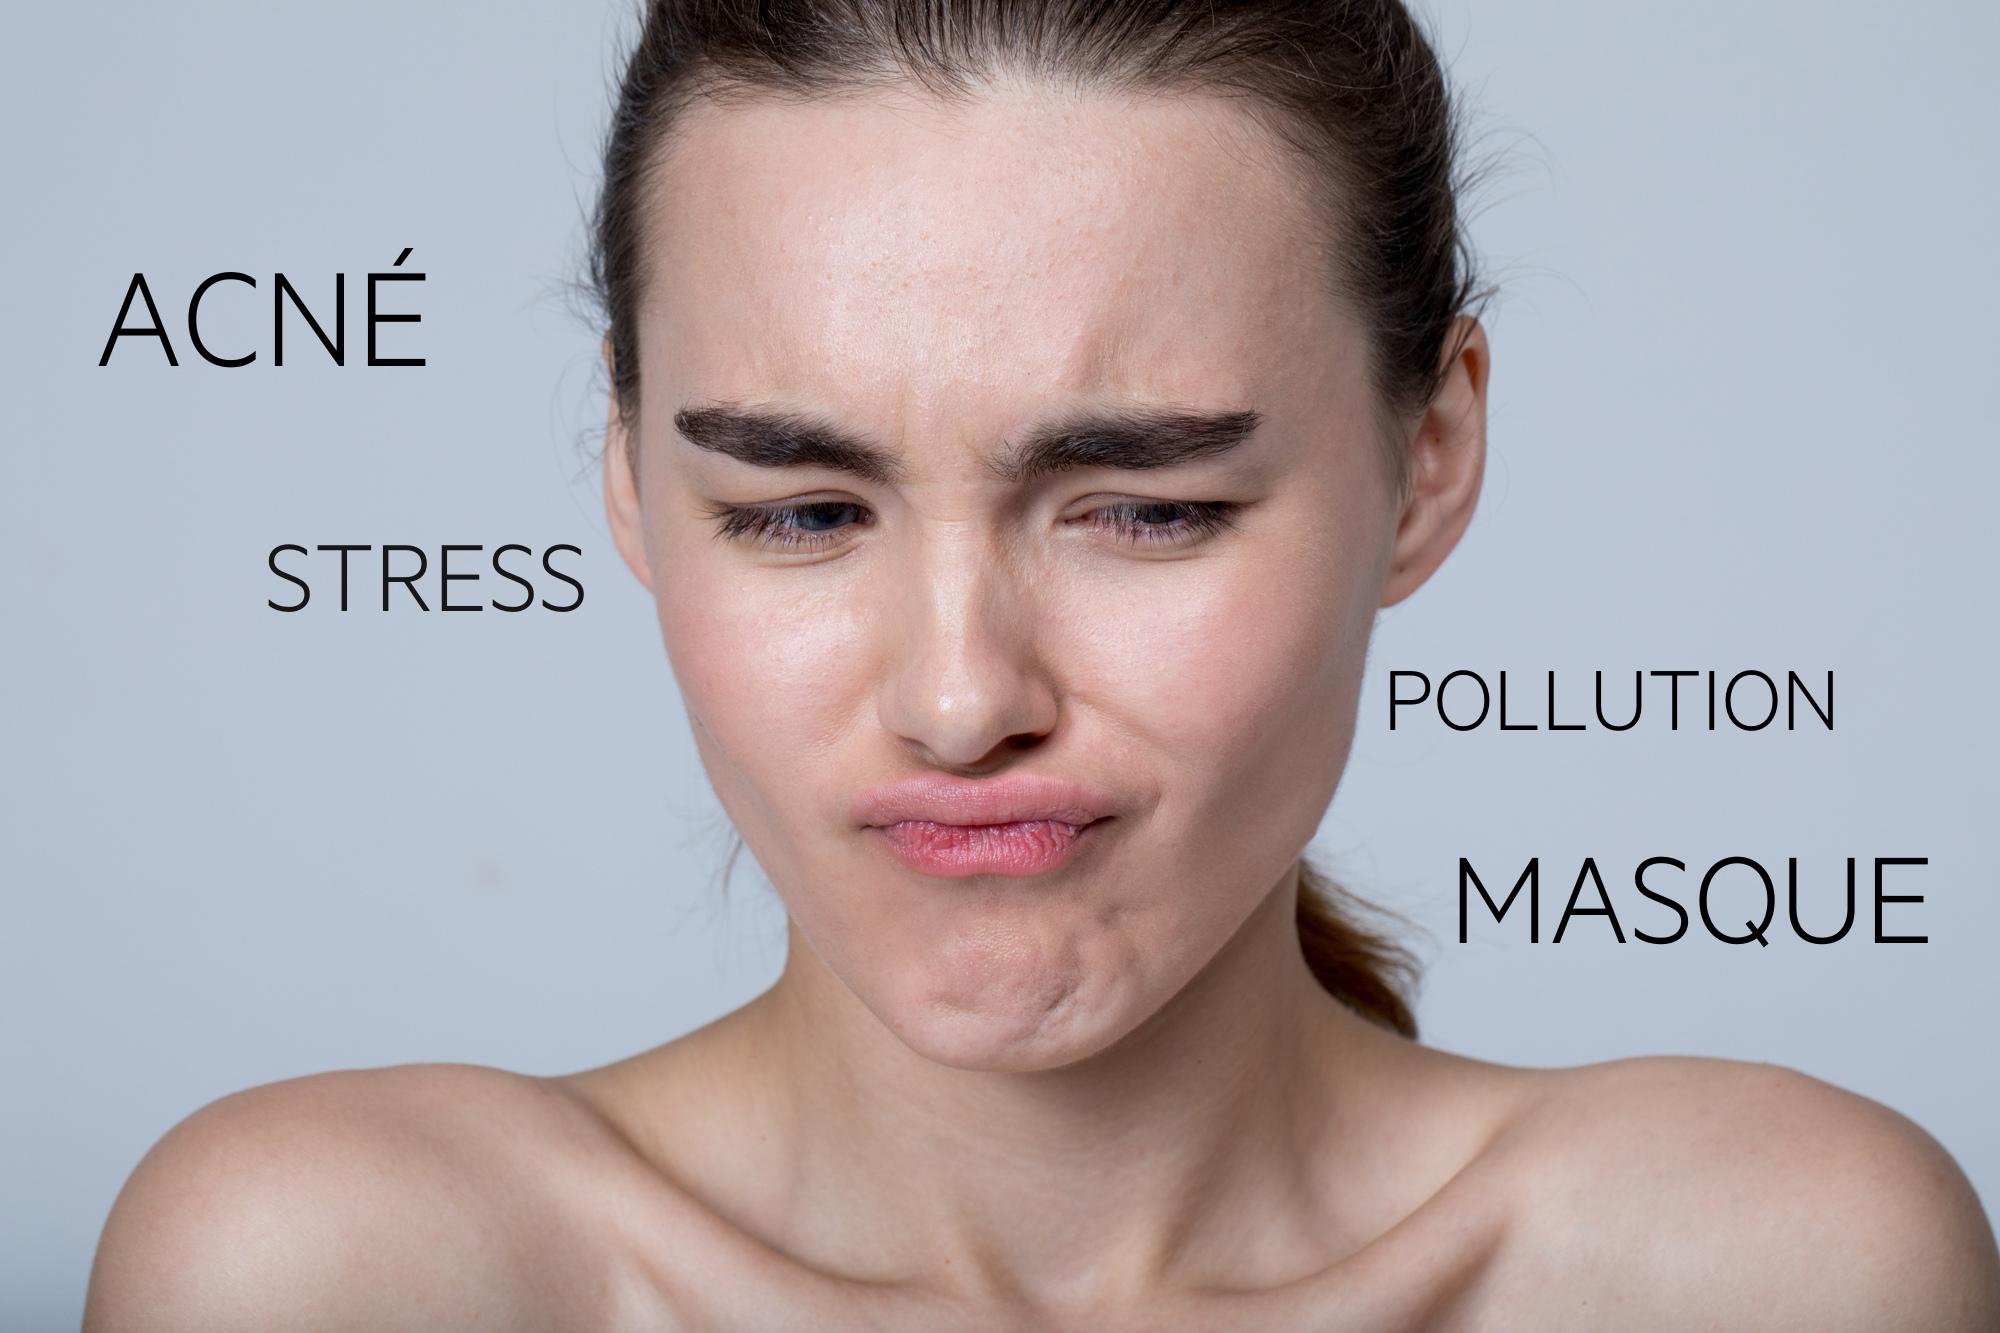 acne_masque_stress_fille